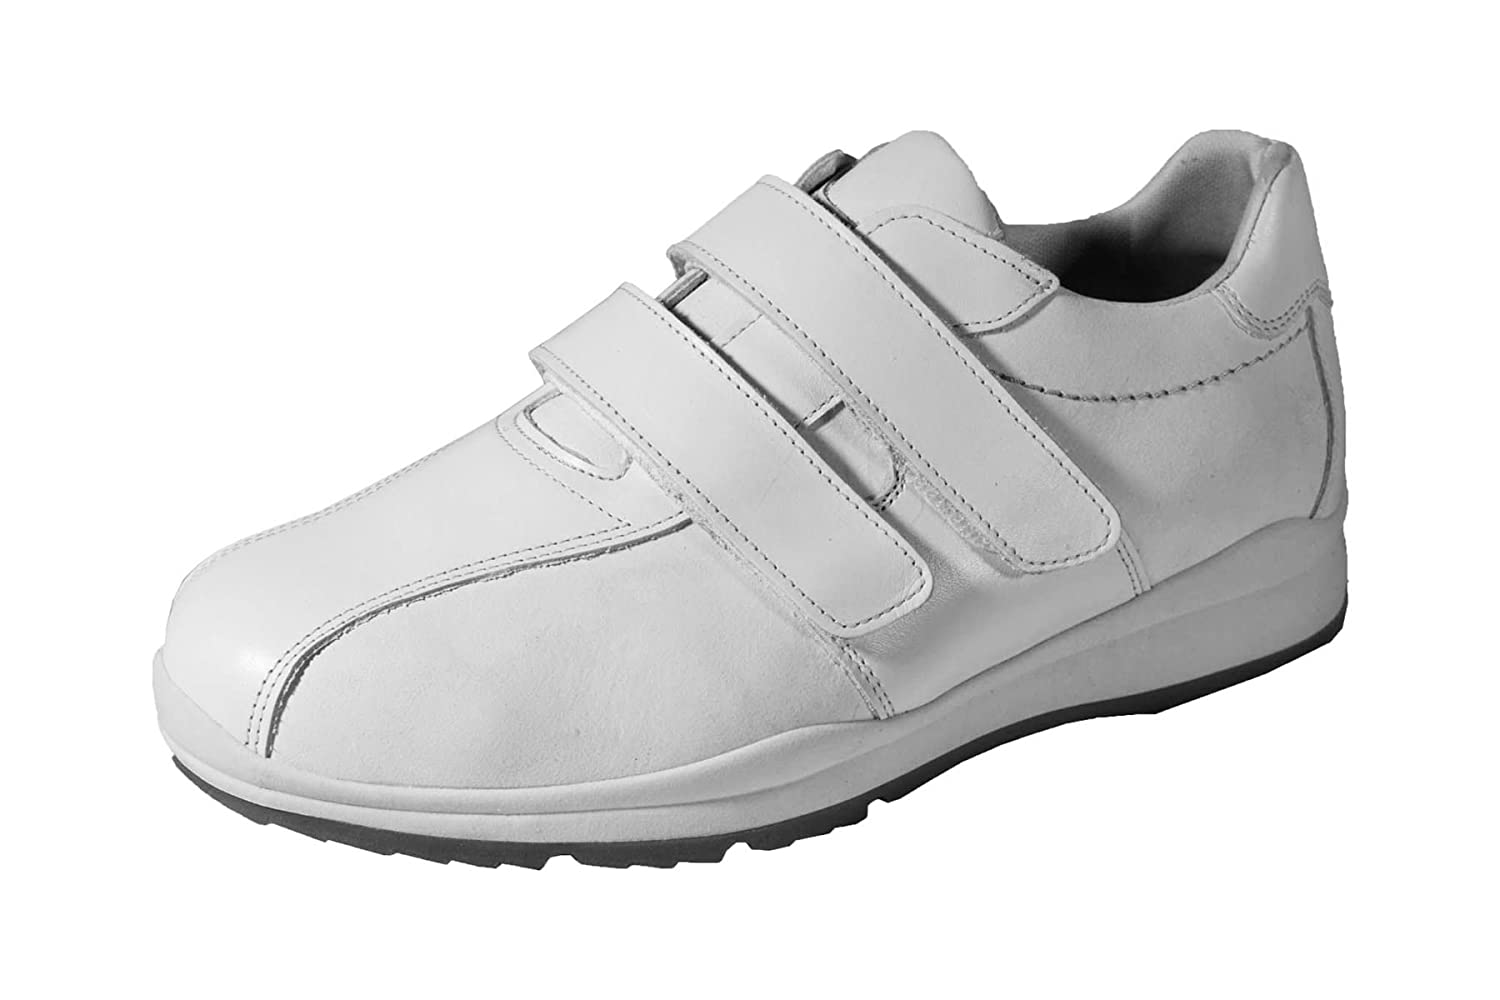 817b5f310b9b1 Db Shoes DB's Men's Extra Wide Twin Stripe Velcro Trainers in White ...